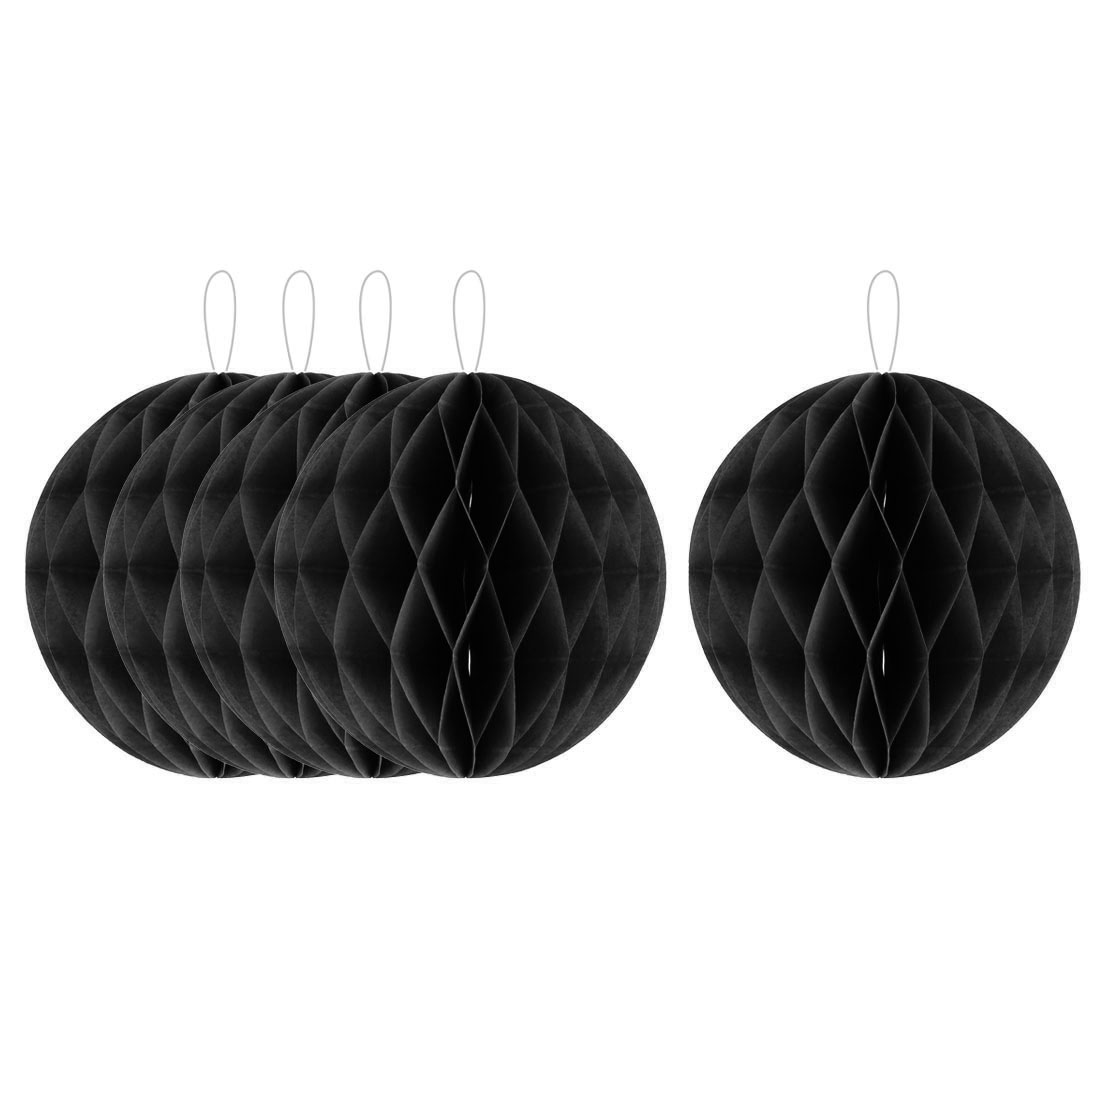 Household Party Paper Wall Window Door DIY Decoration Honeycomb Ball Black 12 Inch Dia 5 Pcs